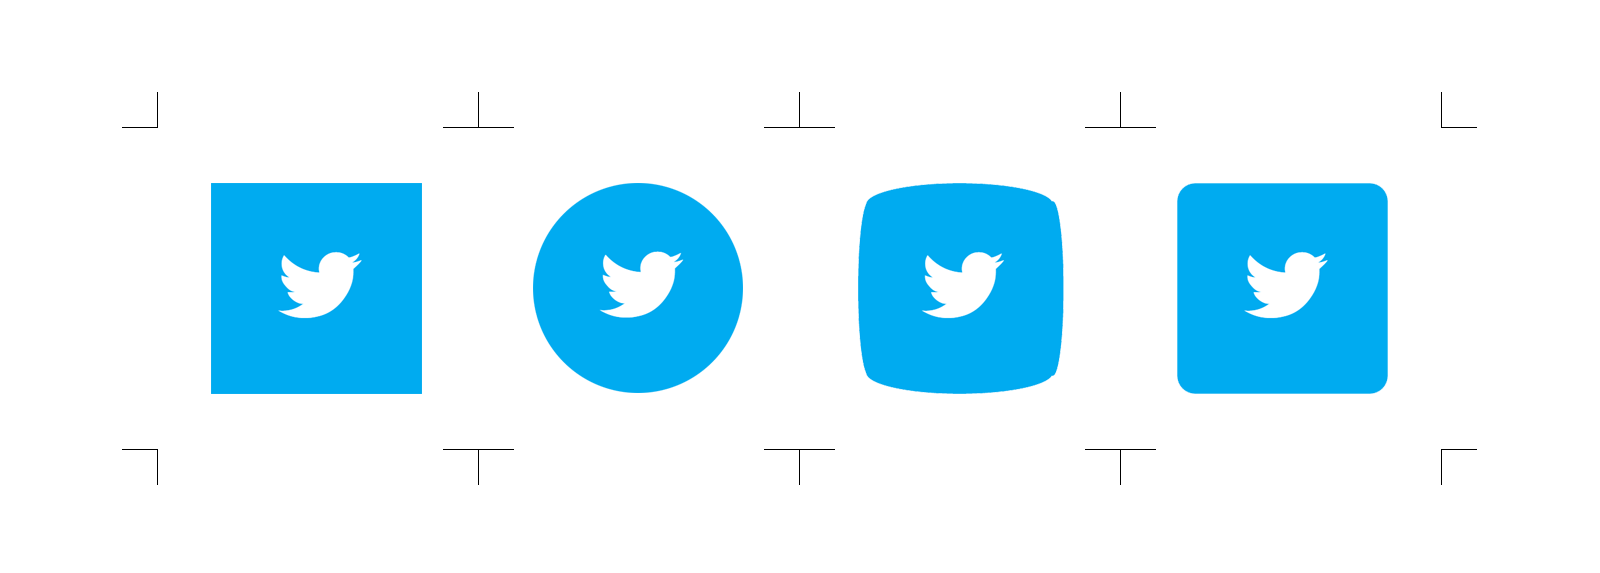 Twitter follow button png. For wordpress profitquery icon